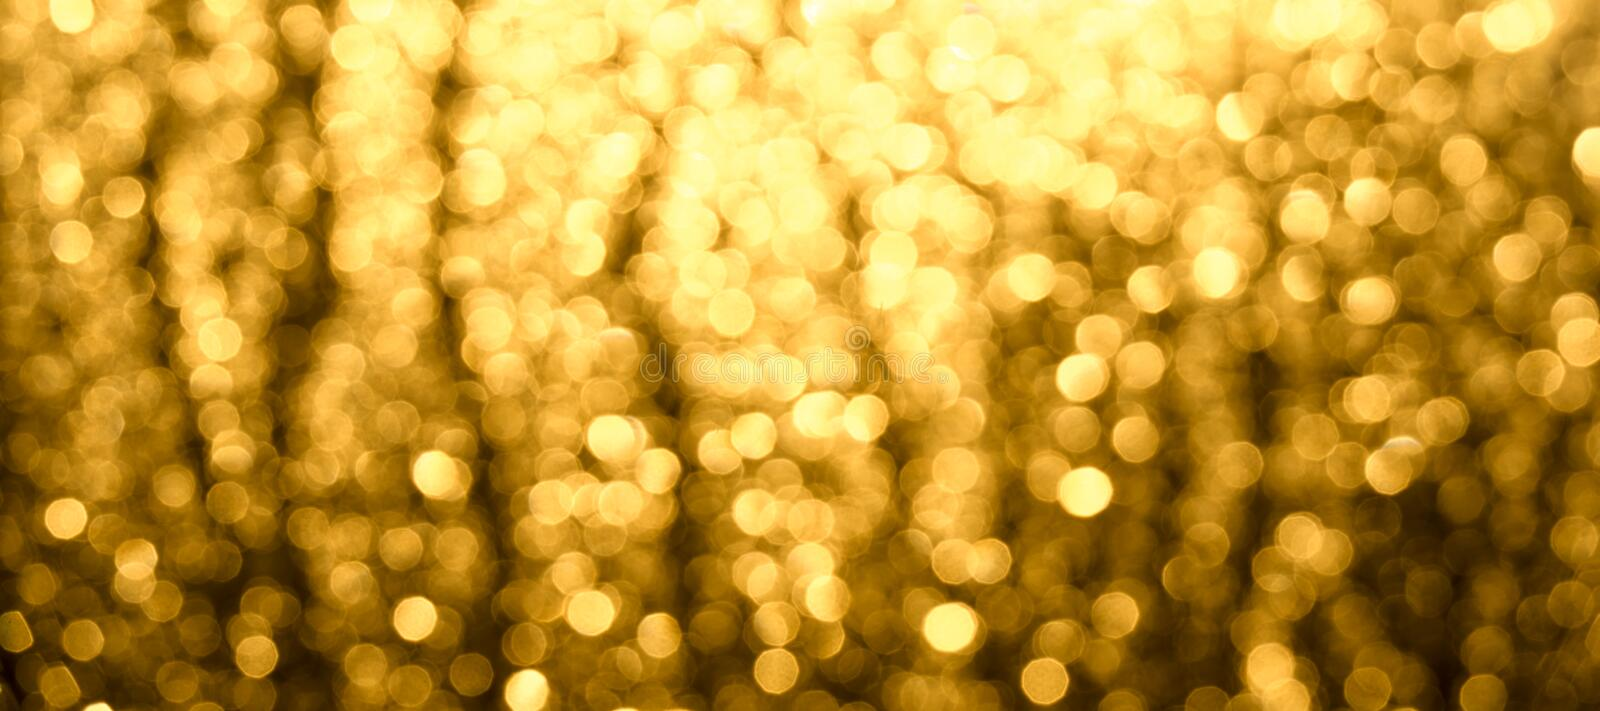 Abstract Christmas blurred background. A Golden-brown glow of Bokeh. Horizontal shot of abstract blurred background. The Golden-brown glow of Bokeh stock images